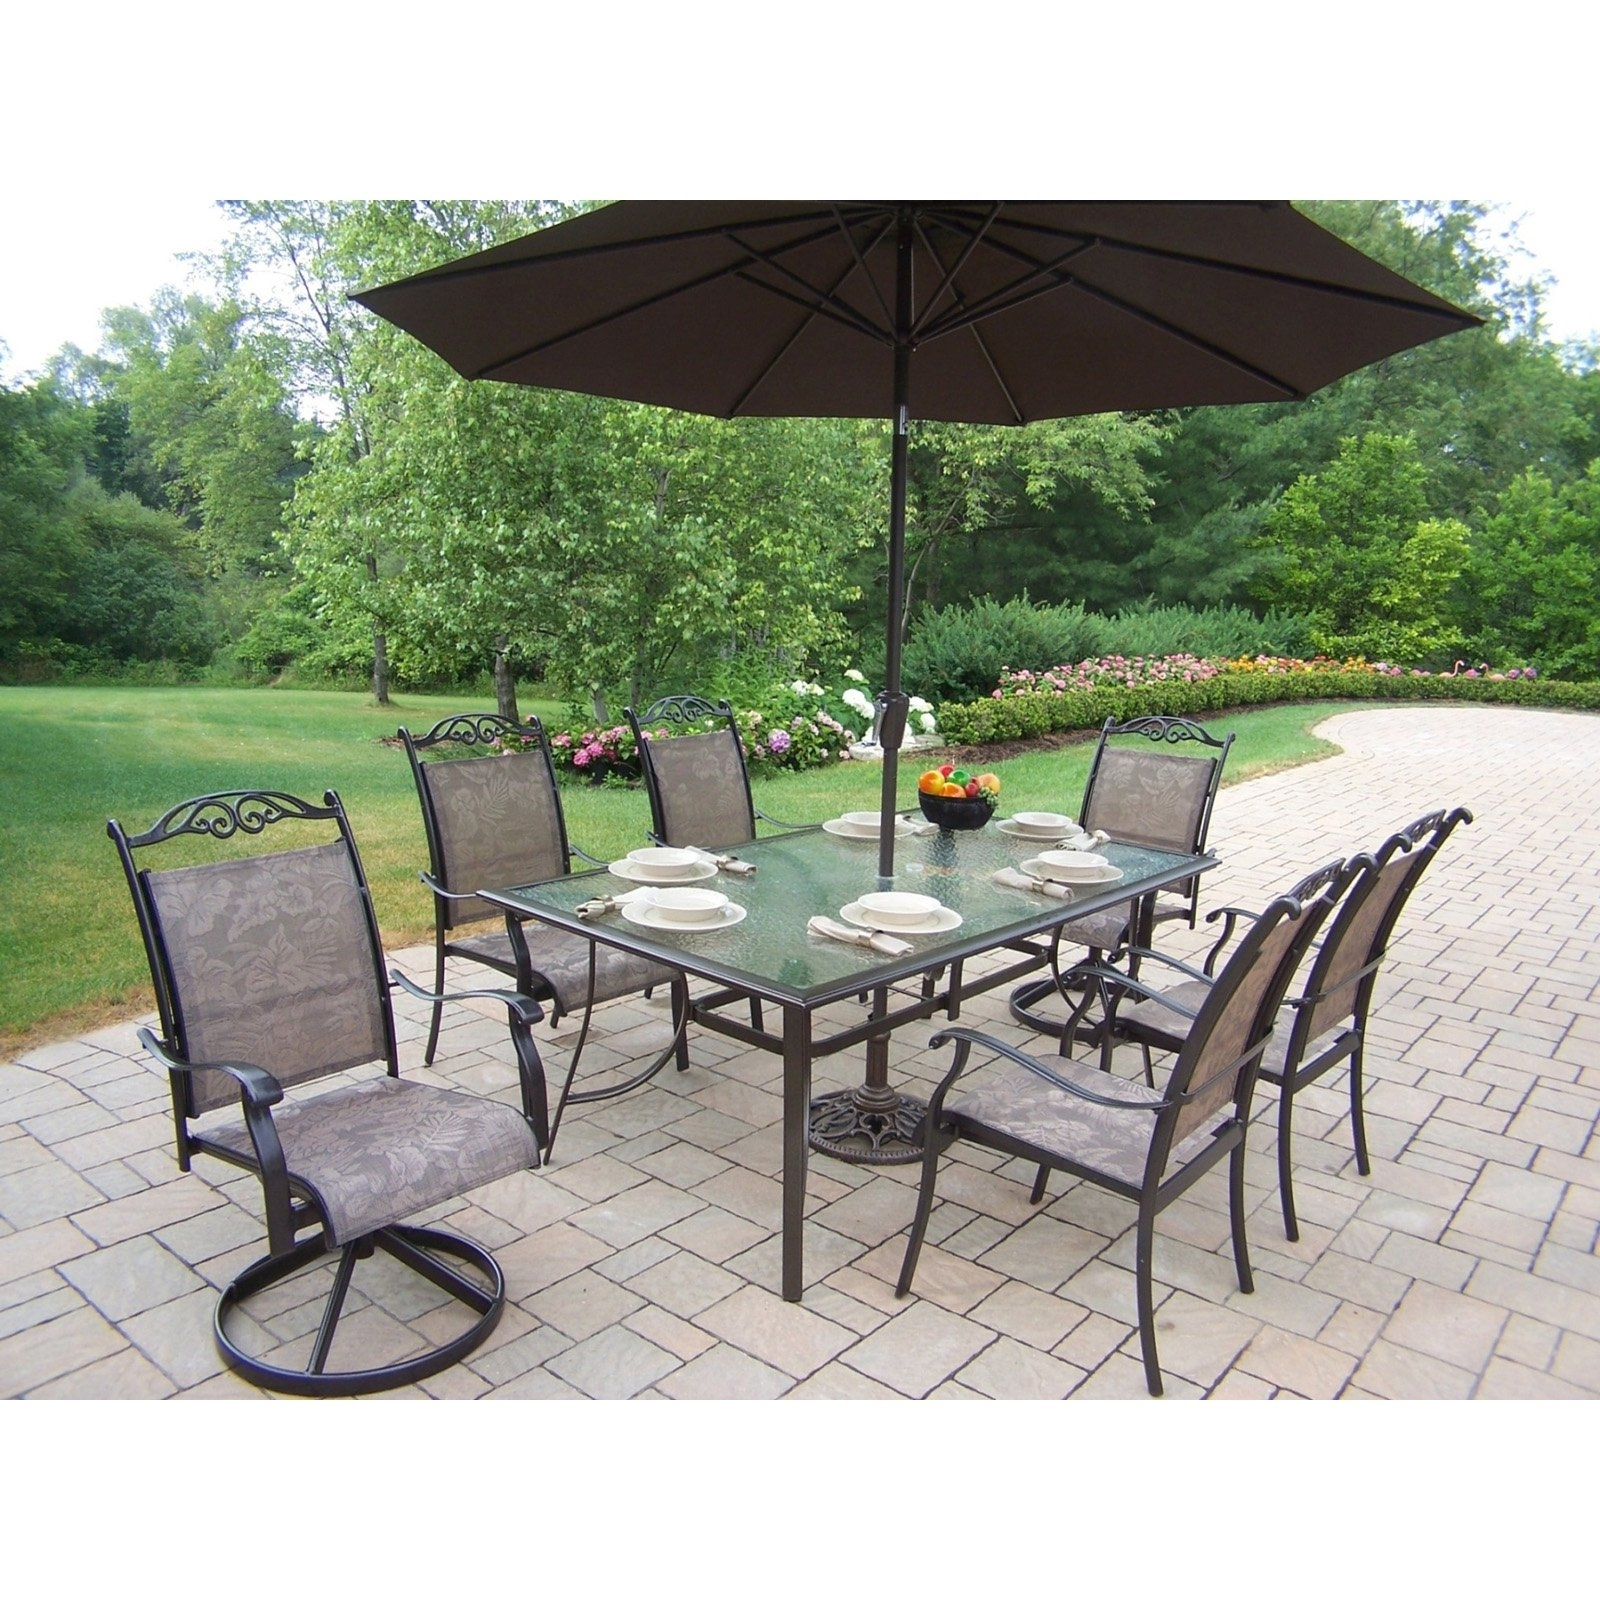 Most Current Patio Ideas Outdoor Dining Sets With Umbrella Small Piece Set Round In Patio Dining Sets With Umbrellas (View 19 of 20)